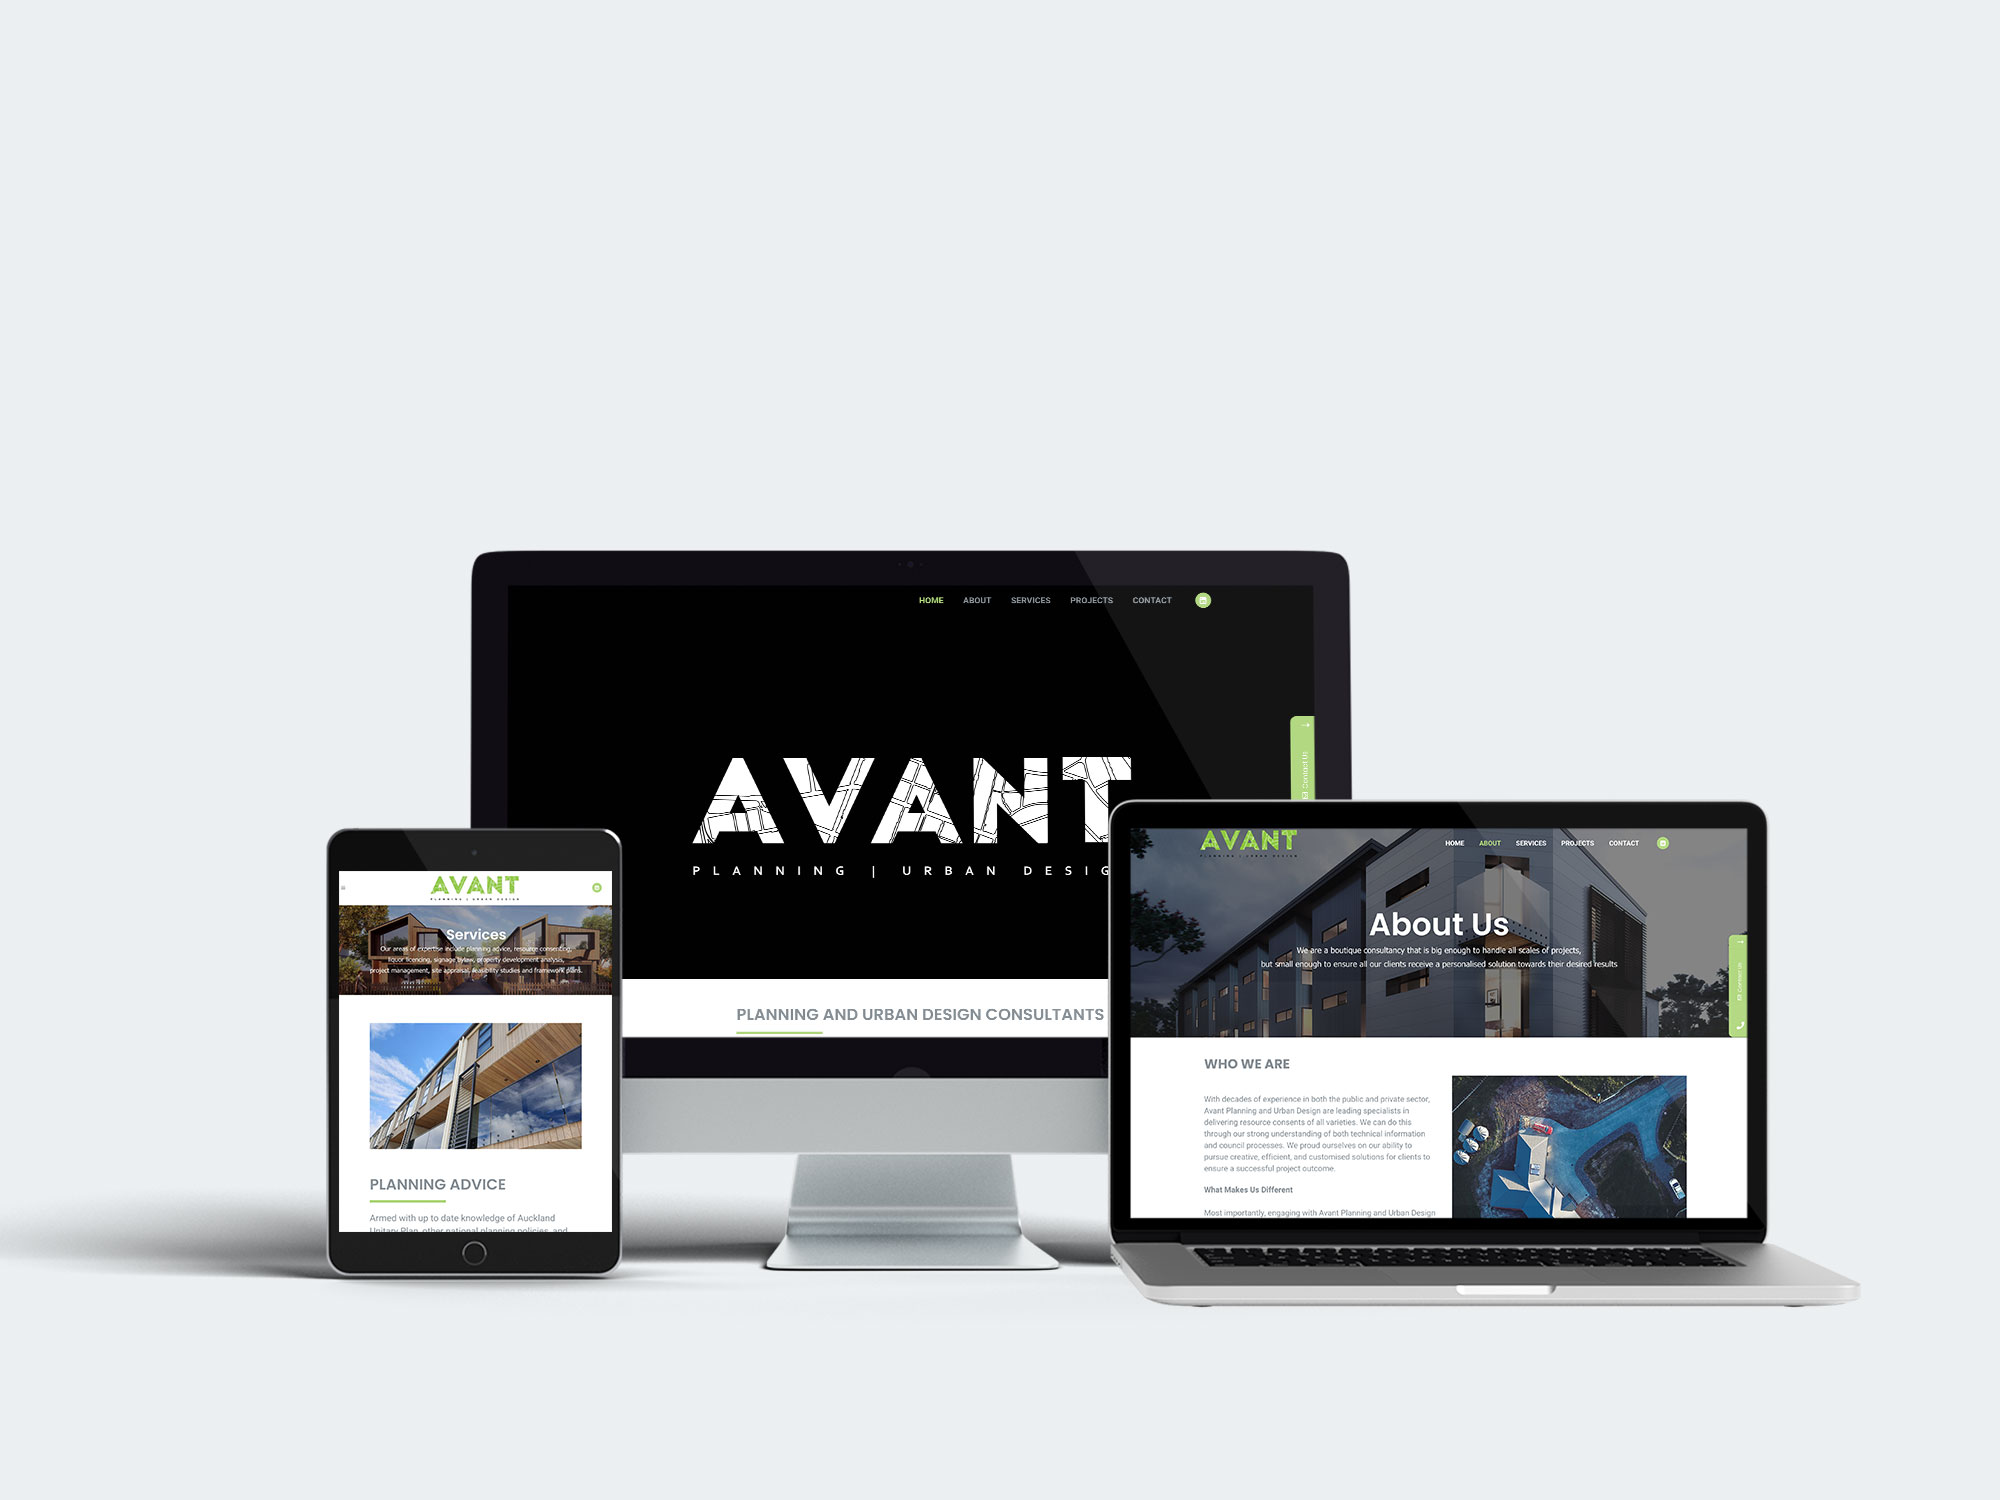 Desktop, Laptop and iPad Mockup of Avant Planning